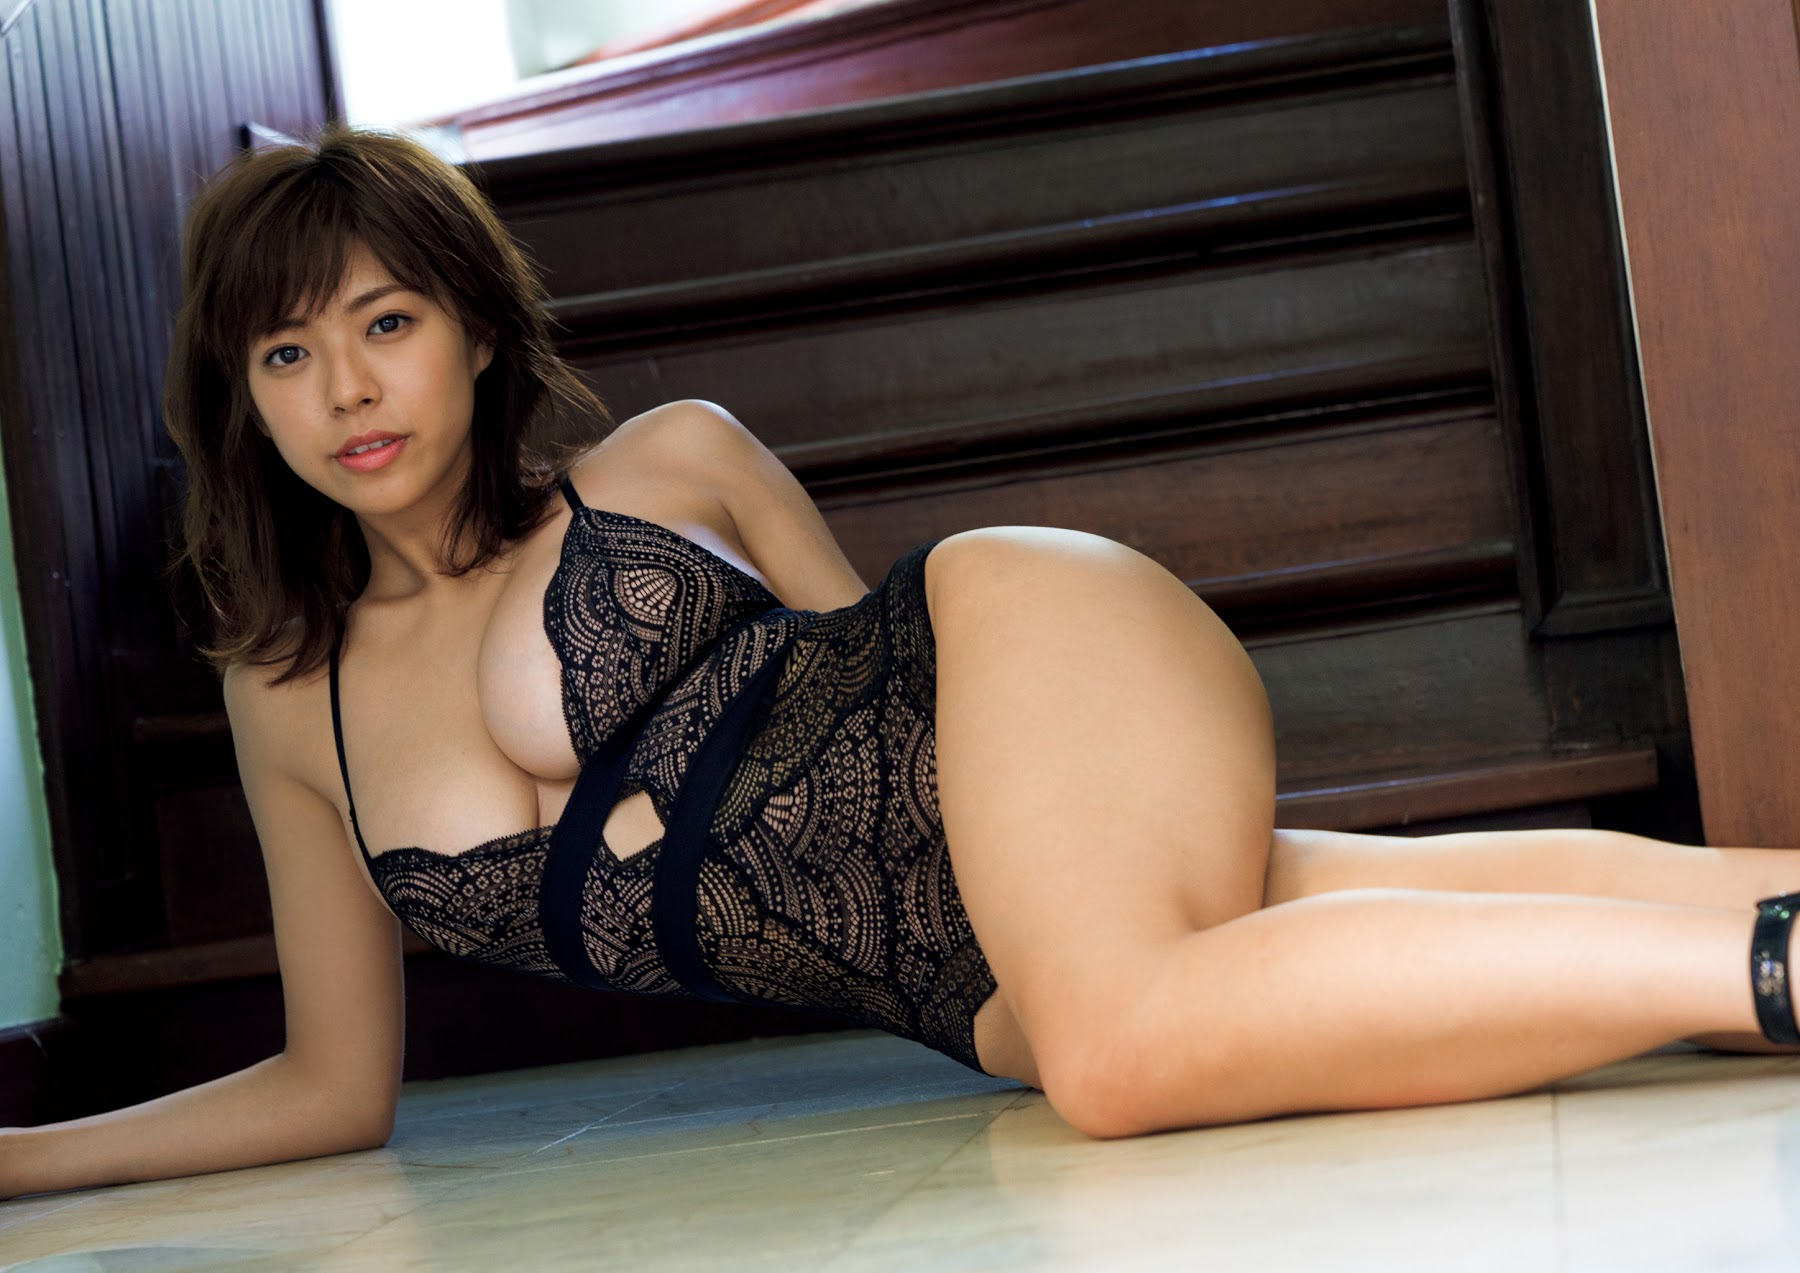 Super body of H cup Minami Wachi 2020 that exposes body and mind in tropical Thailand119